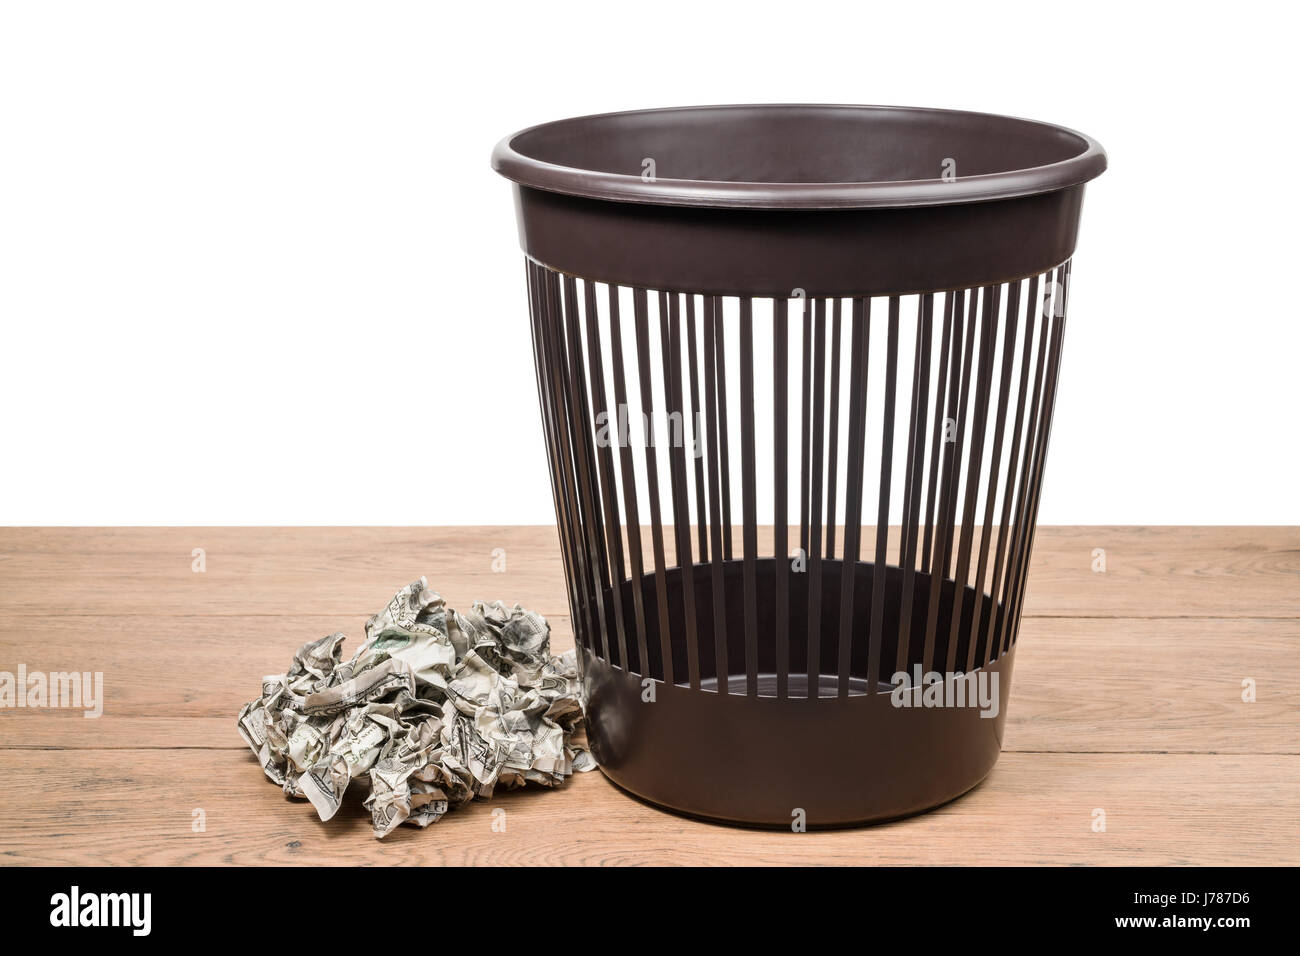 Pile of crumpled money and wastebasket Stock Photo